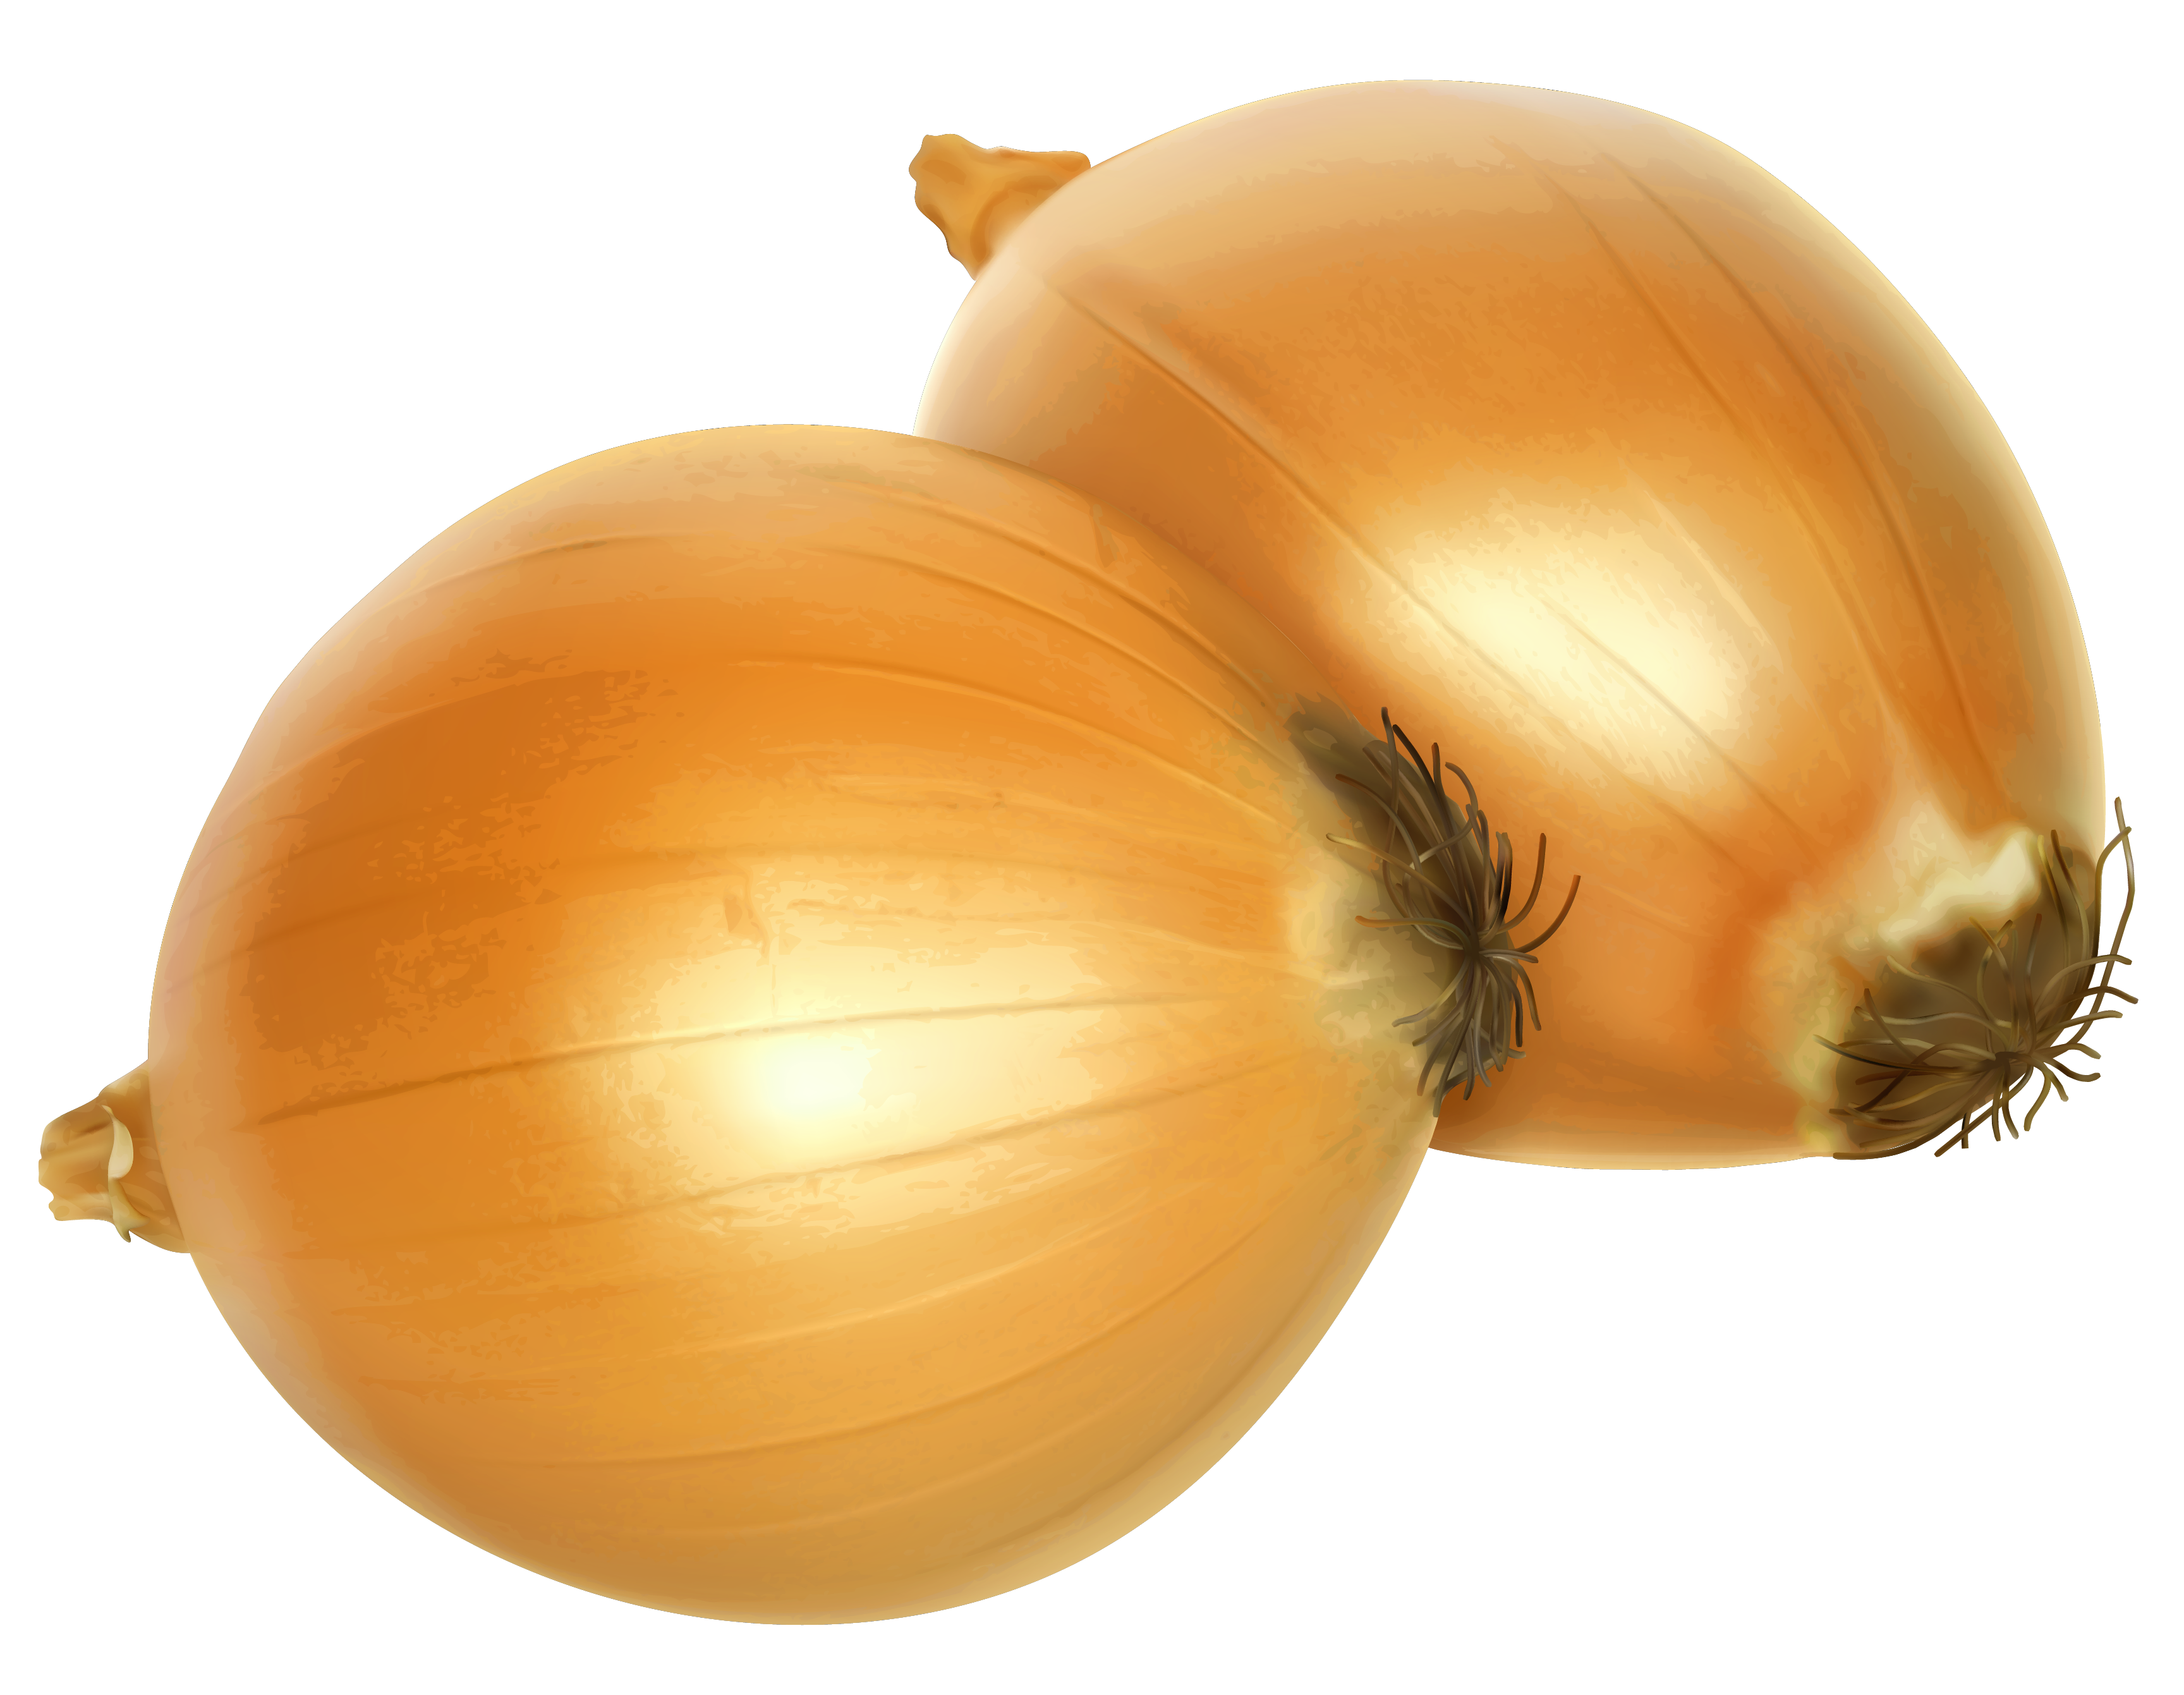 clip art royalty free download Png gallery yopriceville high. Onion clipart.